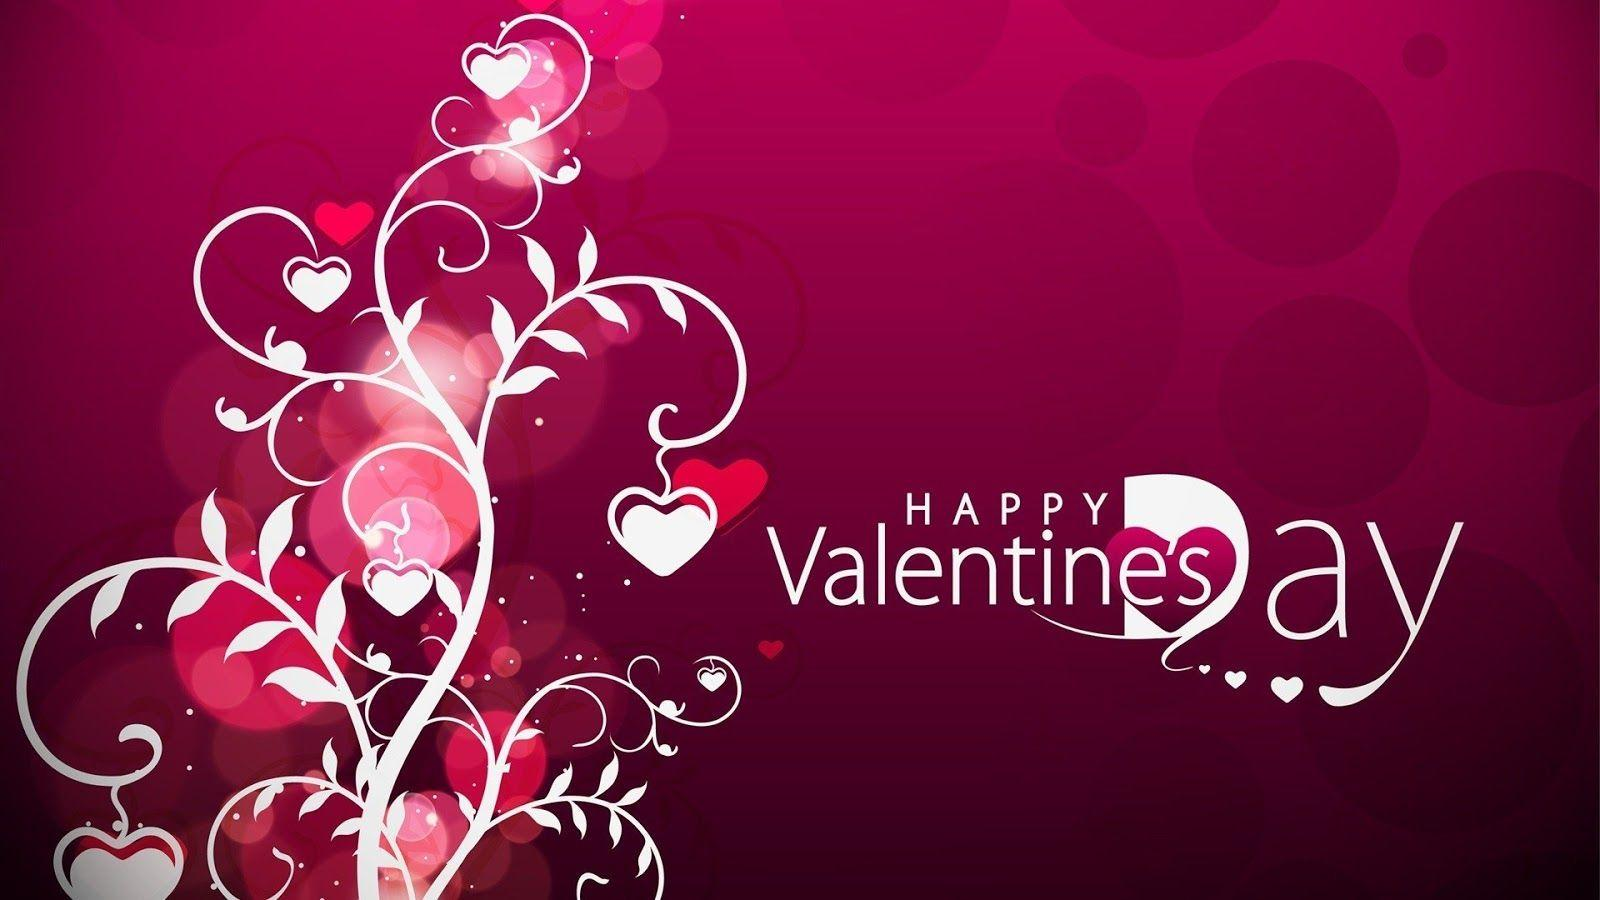 Romantic 14 Feb Happy Valentines Day 2018 HD Wallpapers Free ...